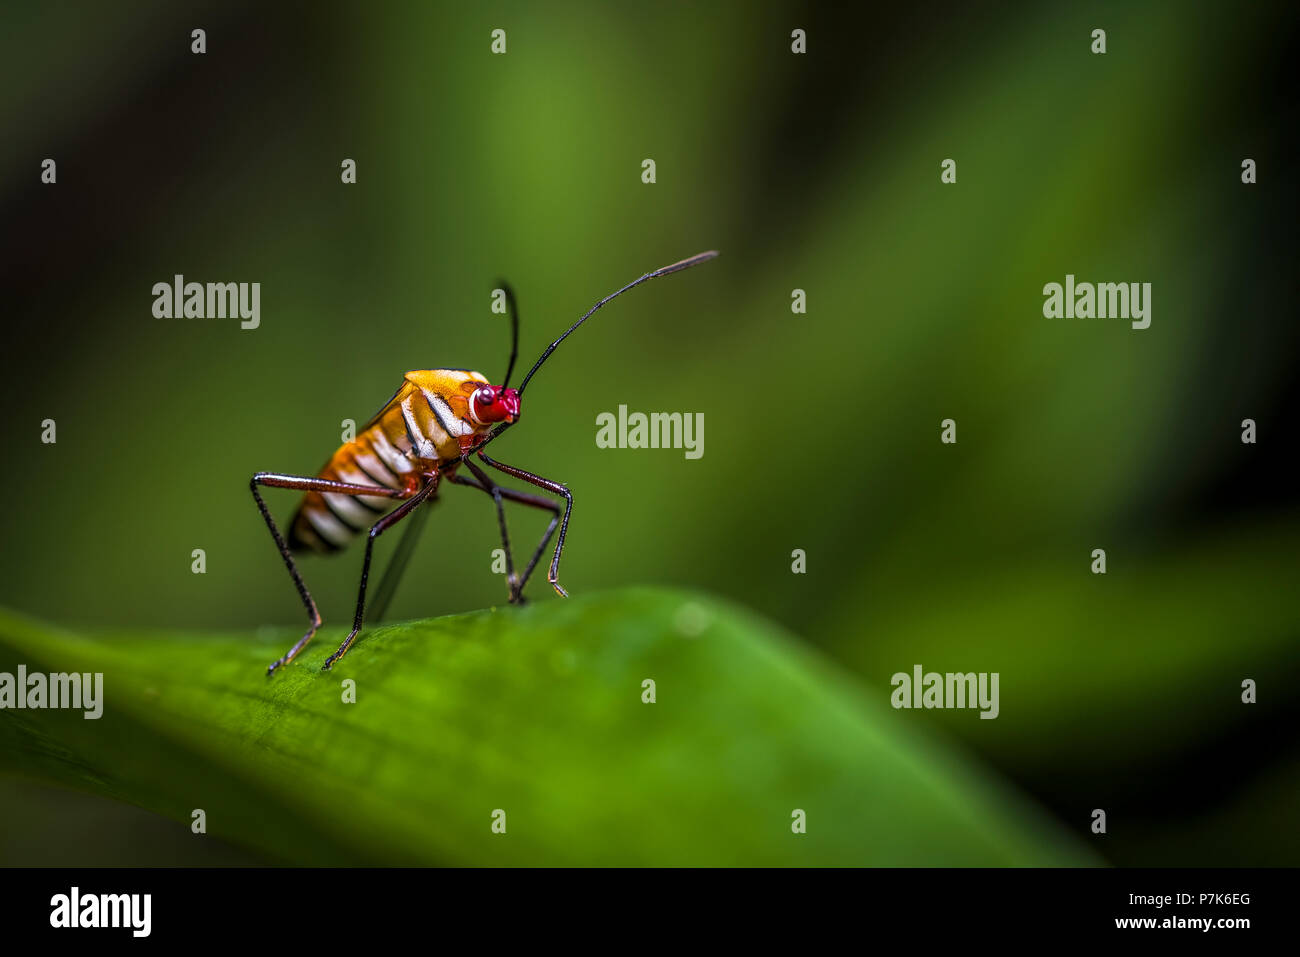 Rare looking mimicry insects in the cloud forest of Panama - Stock Image